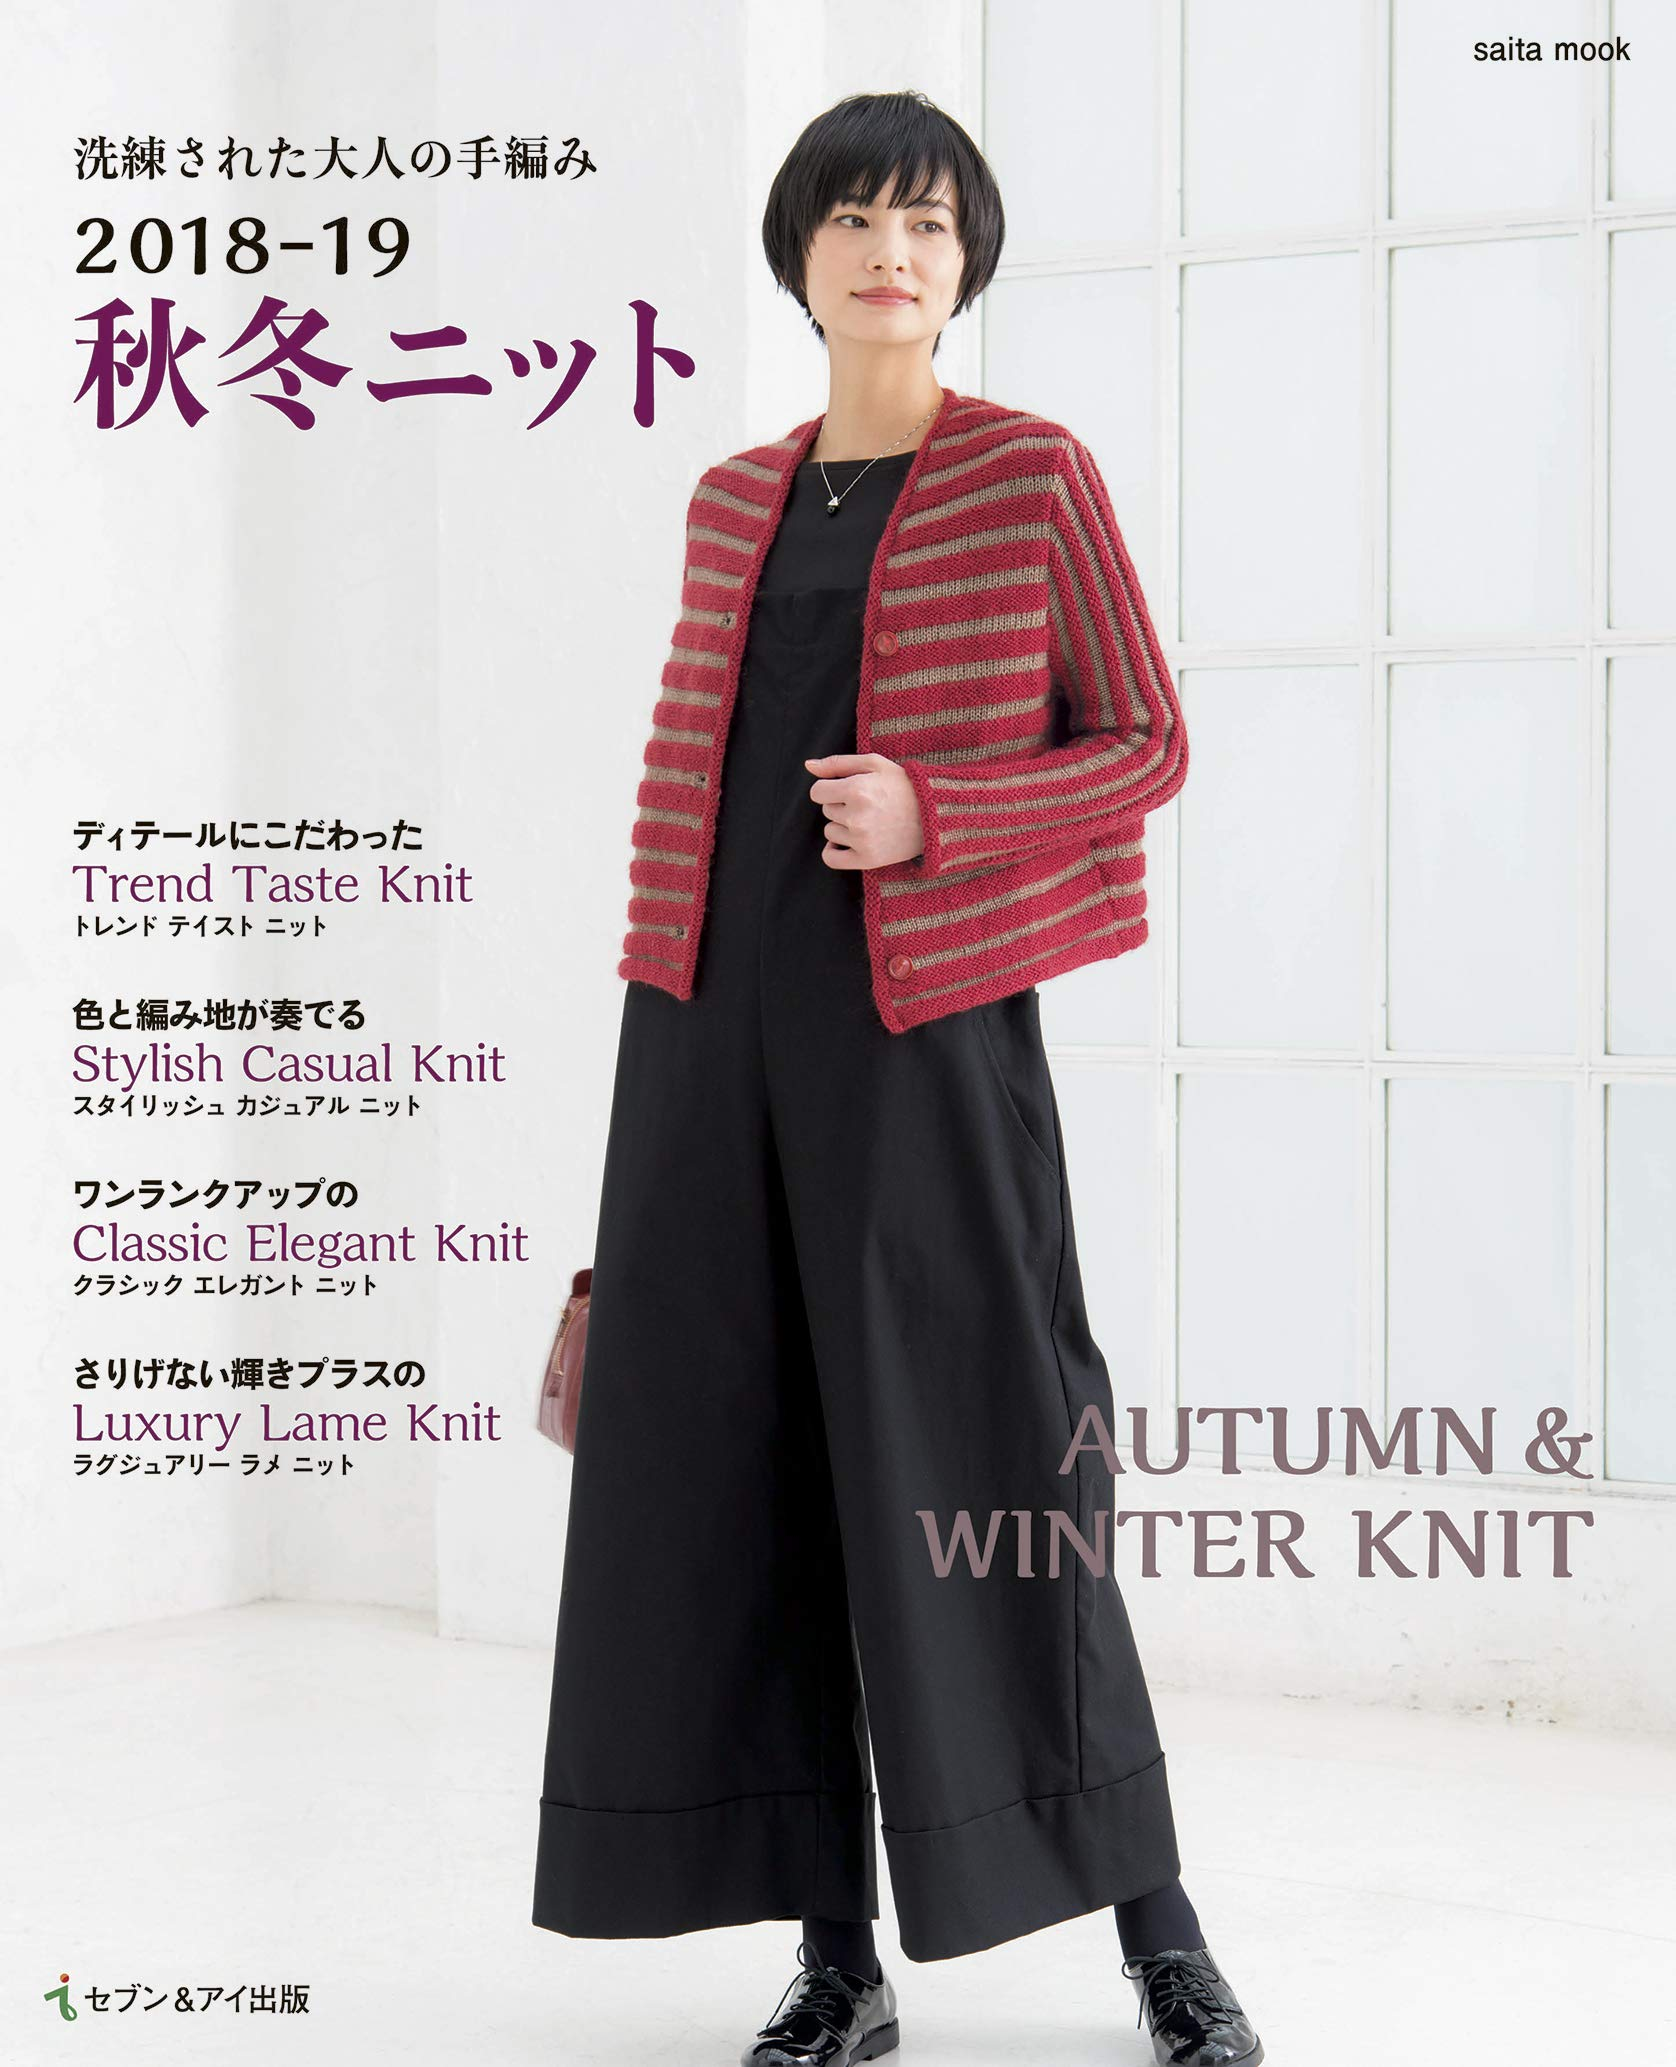 2018-19 Autumn / Winter Knit Sophisticated Adult Hand Knitting